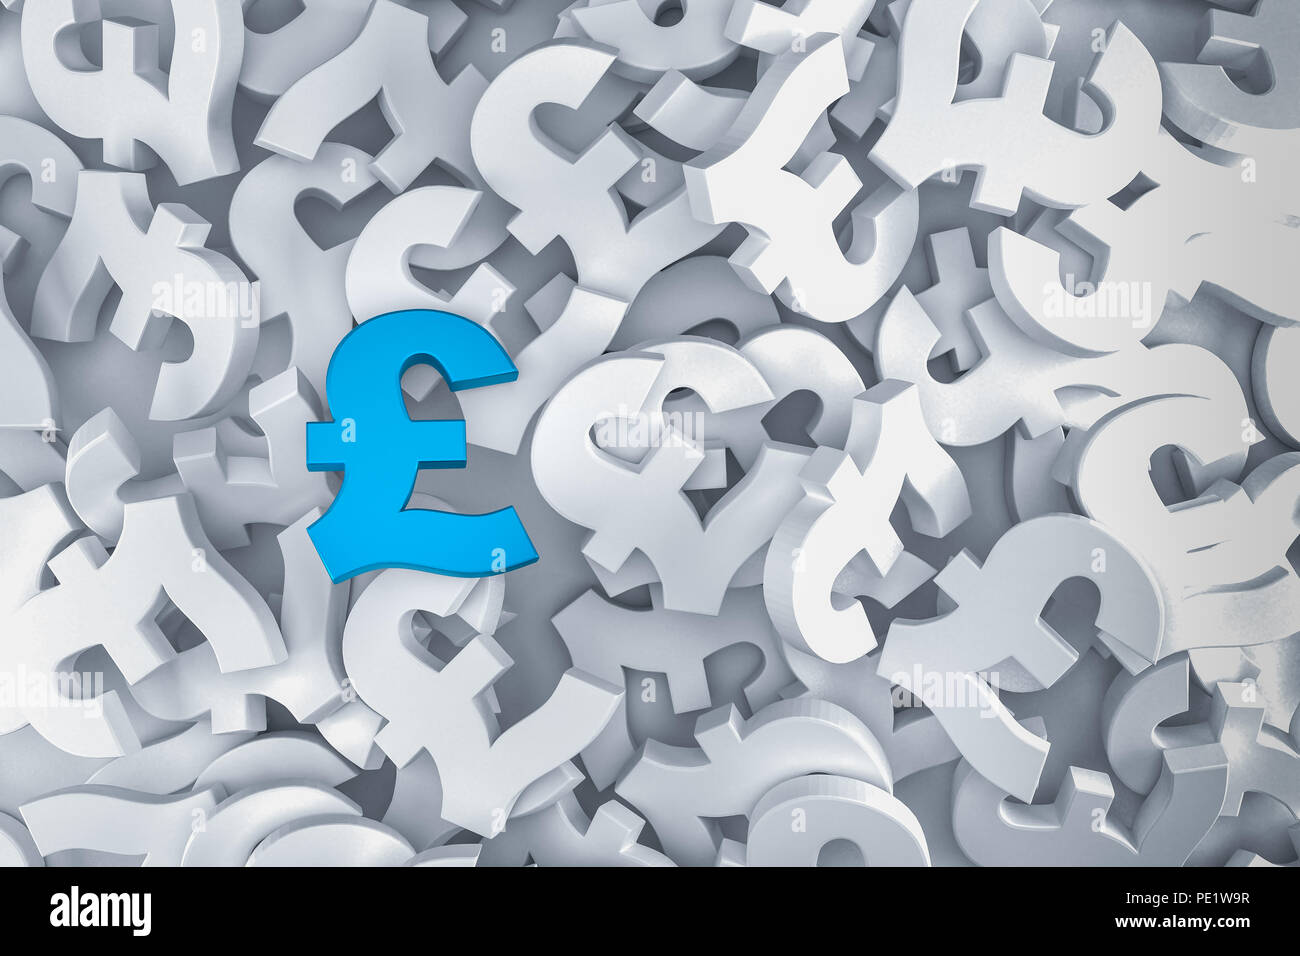 Great British Pound Stock Photos Great British Pound Stock Images